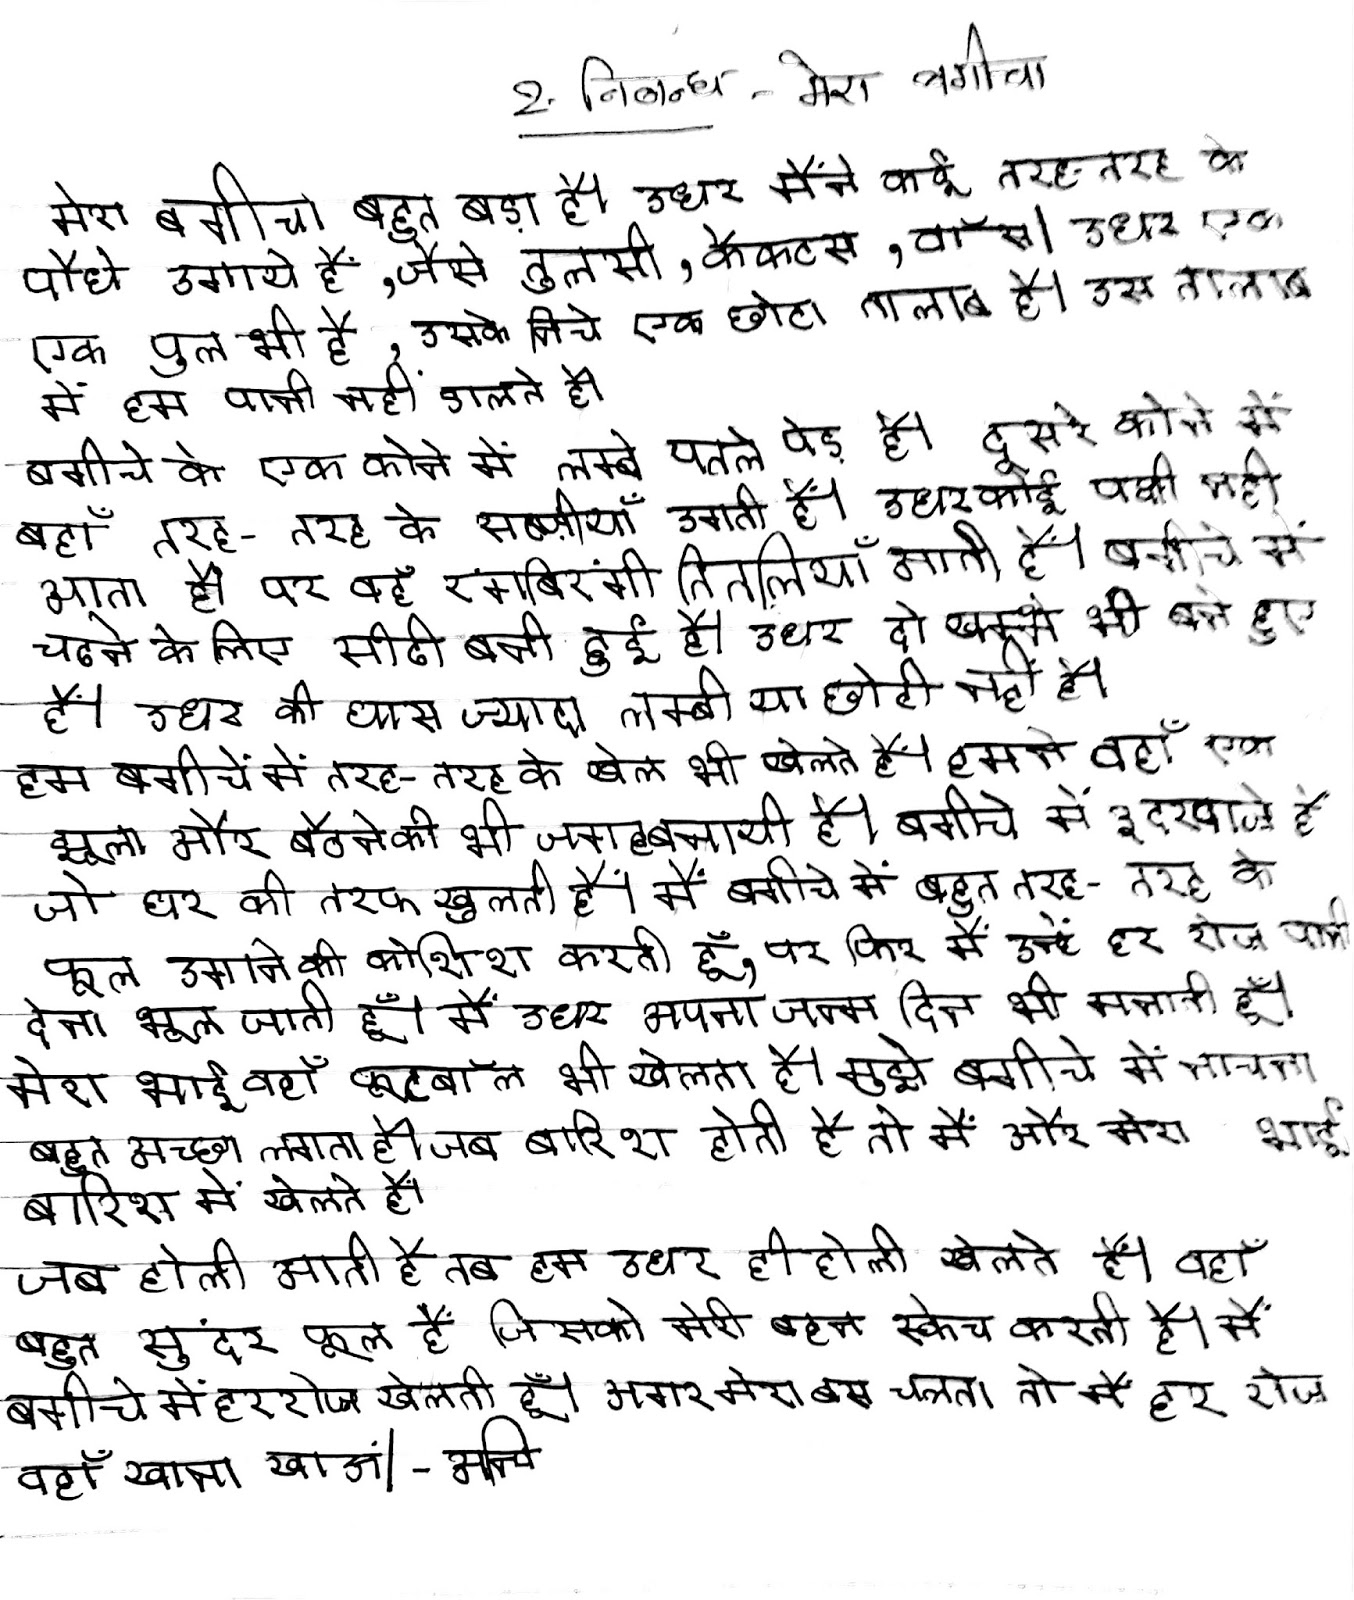 essay on mera bagicha in hindi essay on mera bagicha in hindi one day you can